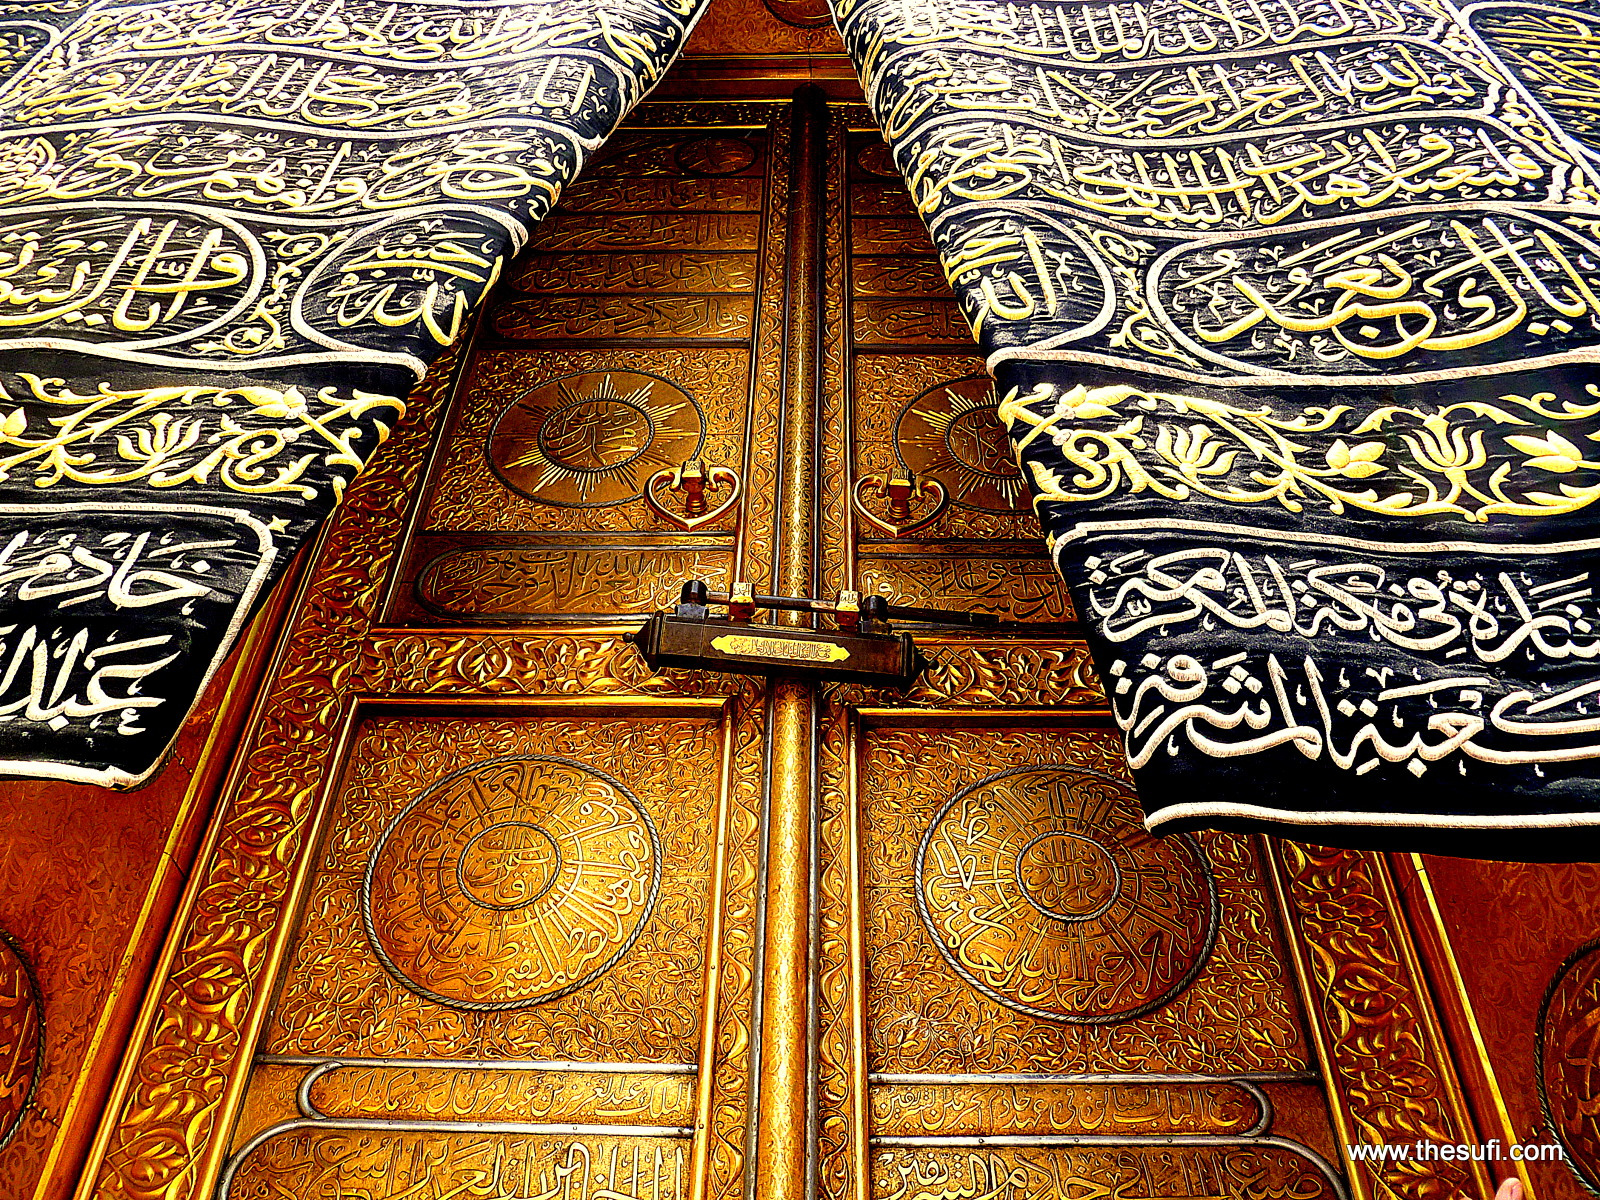 The Golden Doors of Kaba